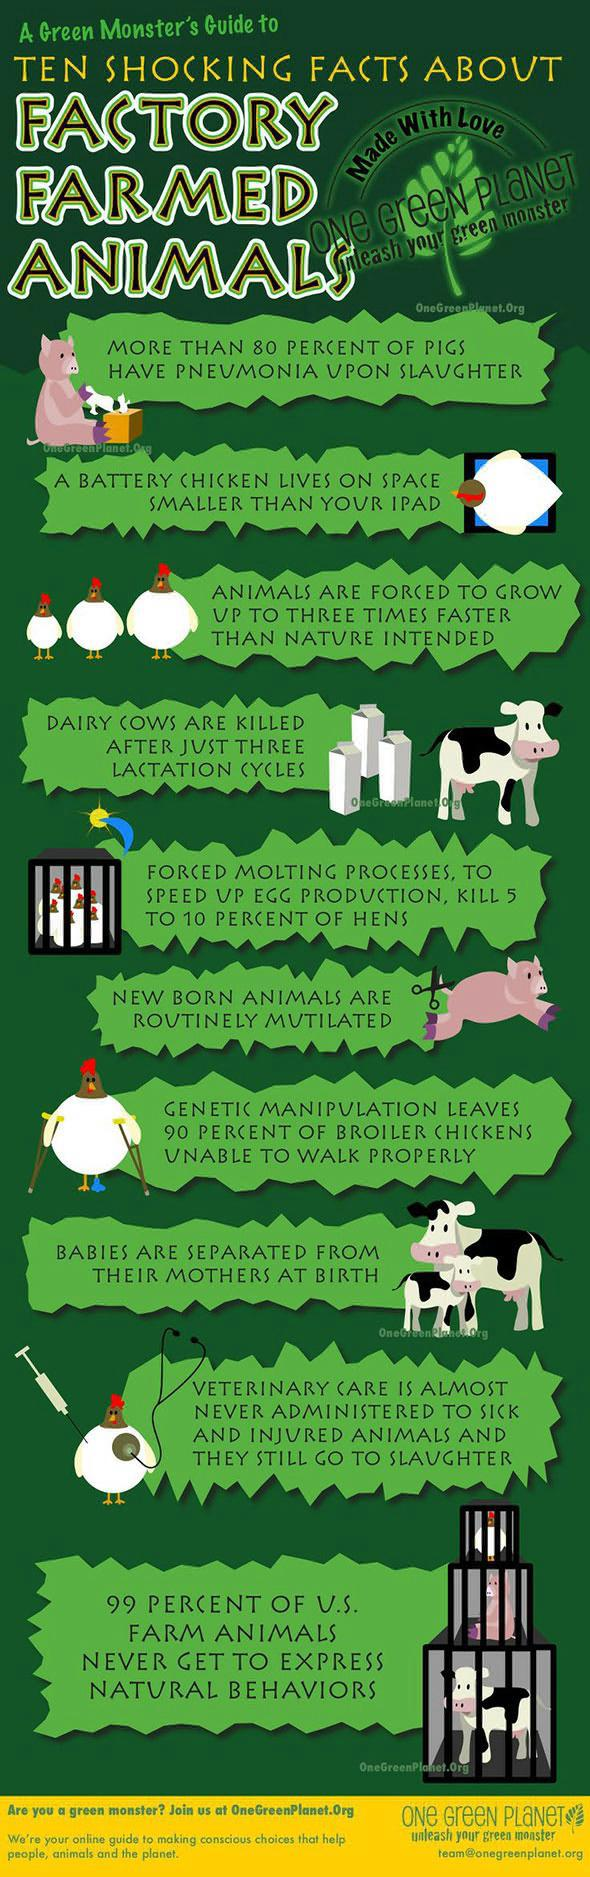 Issue of factory farming of animals